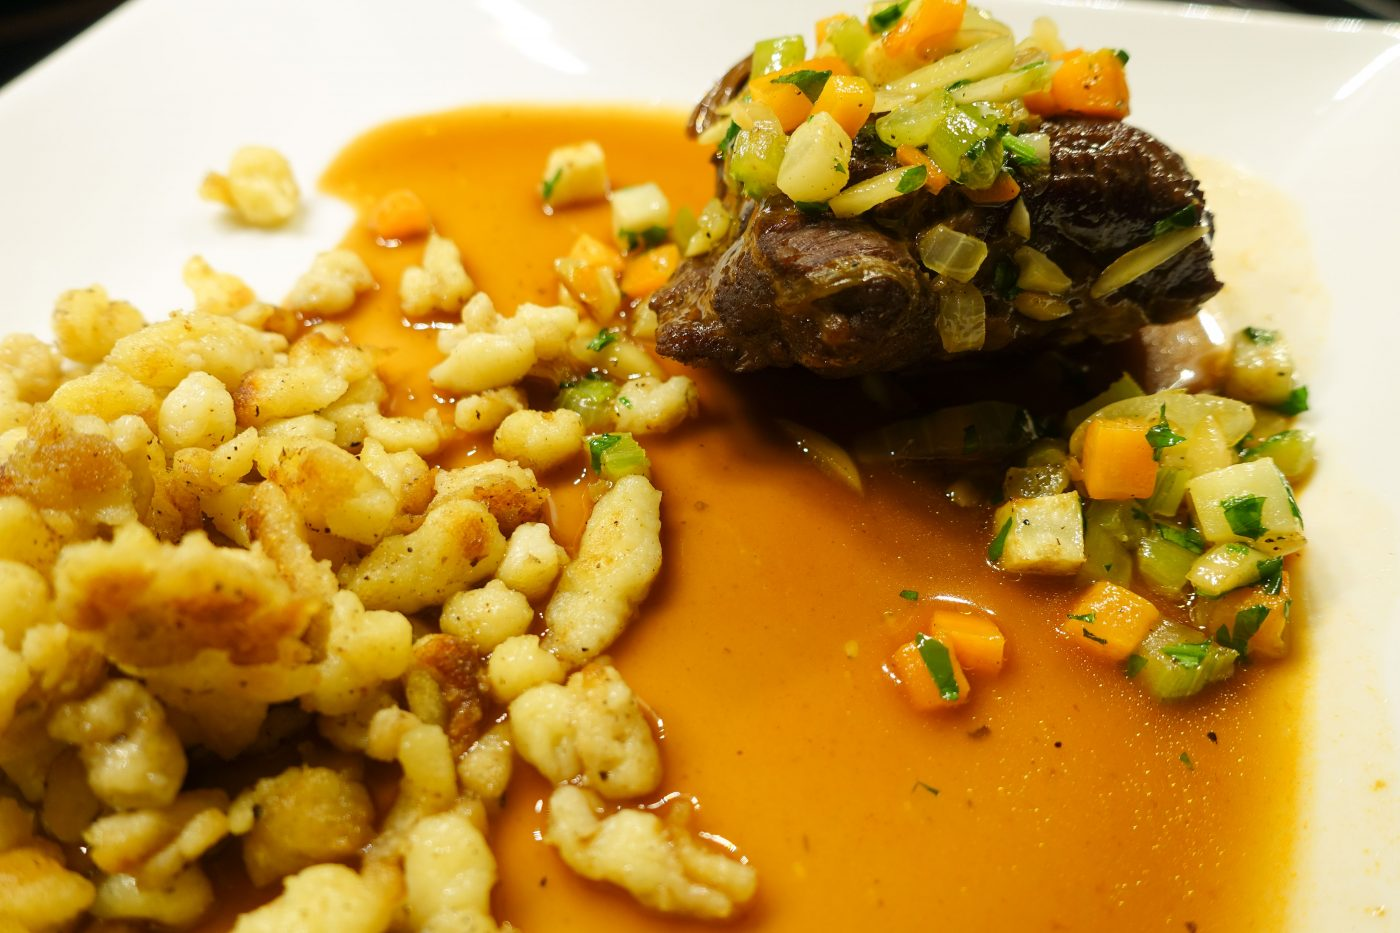 Braised Veal Cheeks with root vegetables and Spaetzle